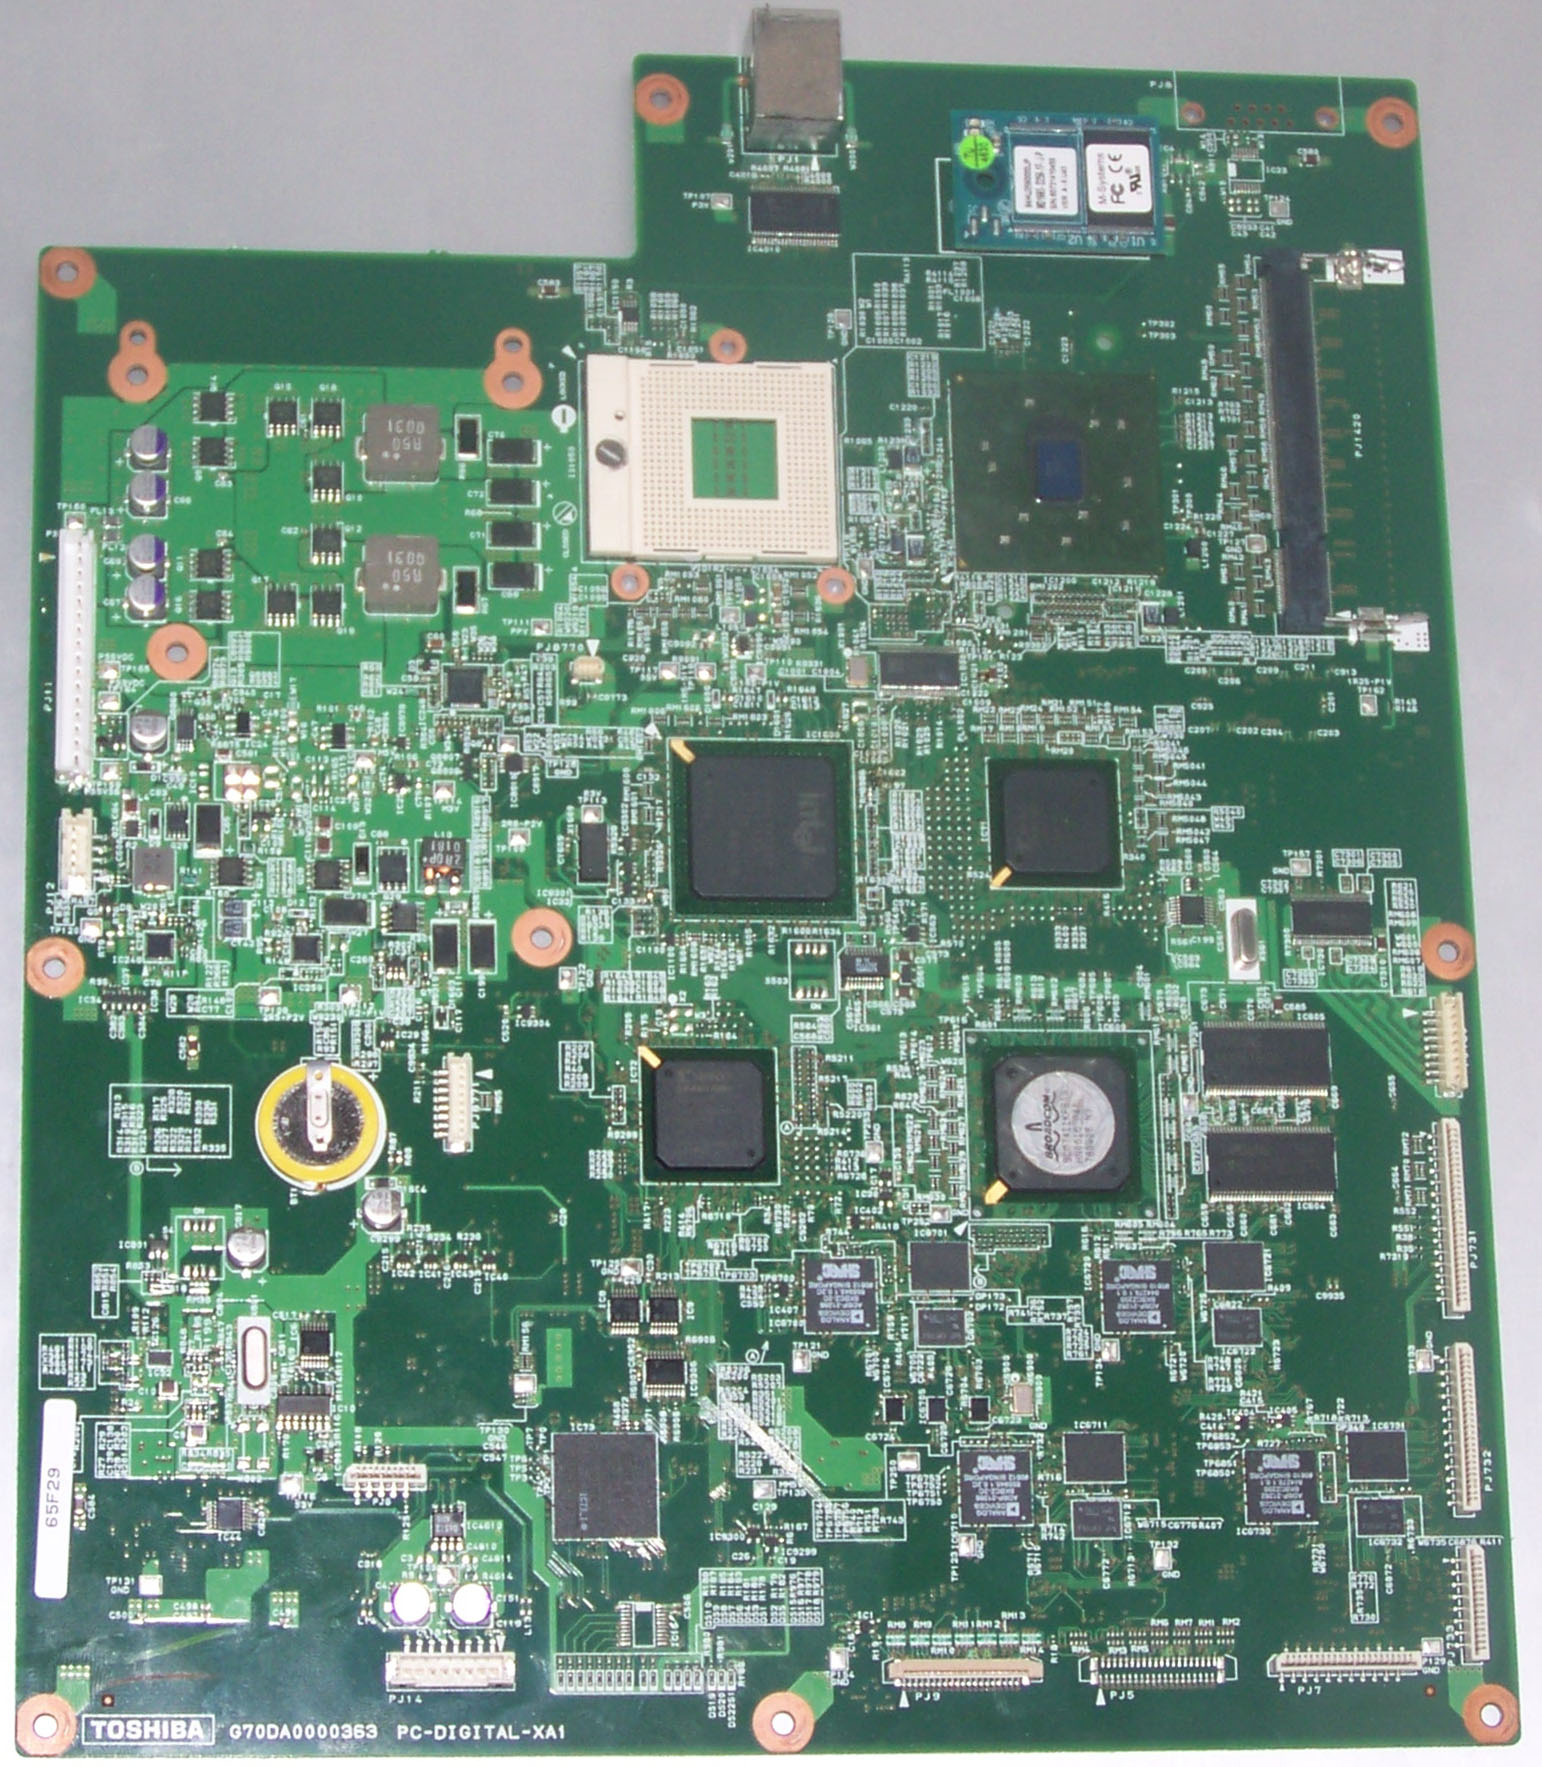 Computer Engineering Wikipedia Software For Electronic Circuit Design The Motherboard Used In A Hd Dvd Player Result Of Efforts